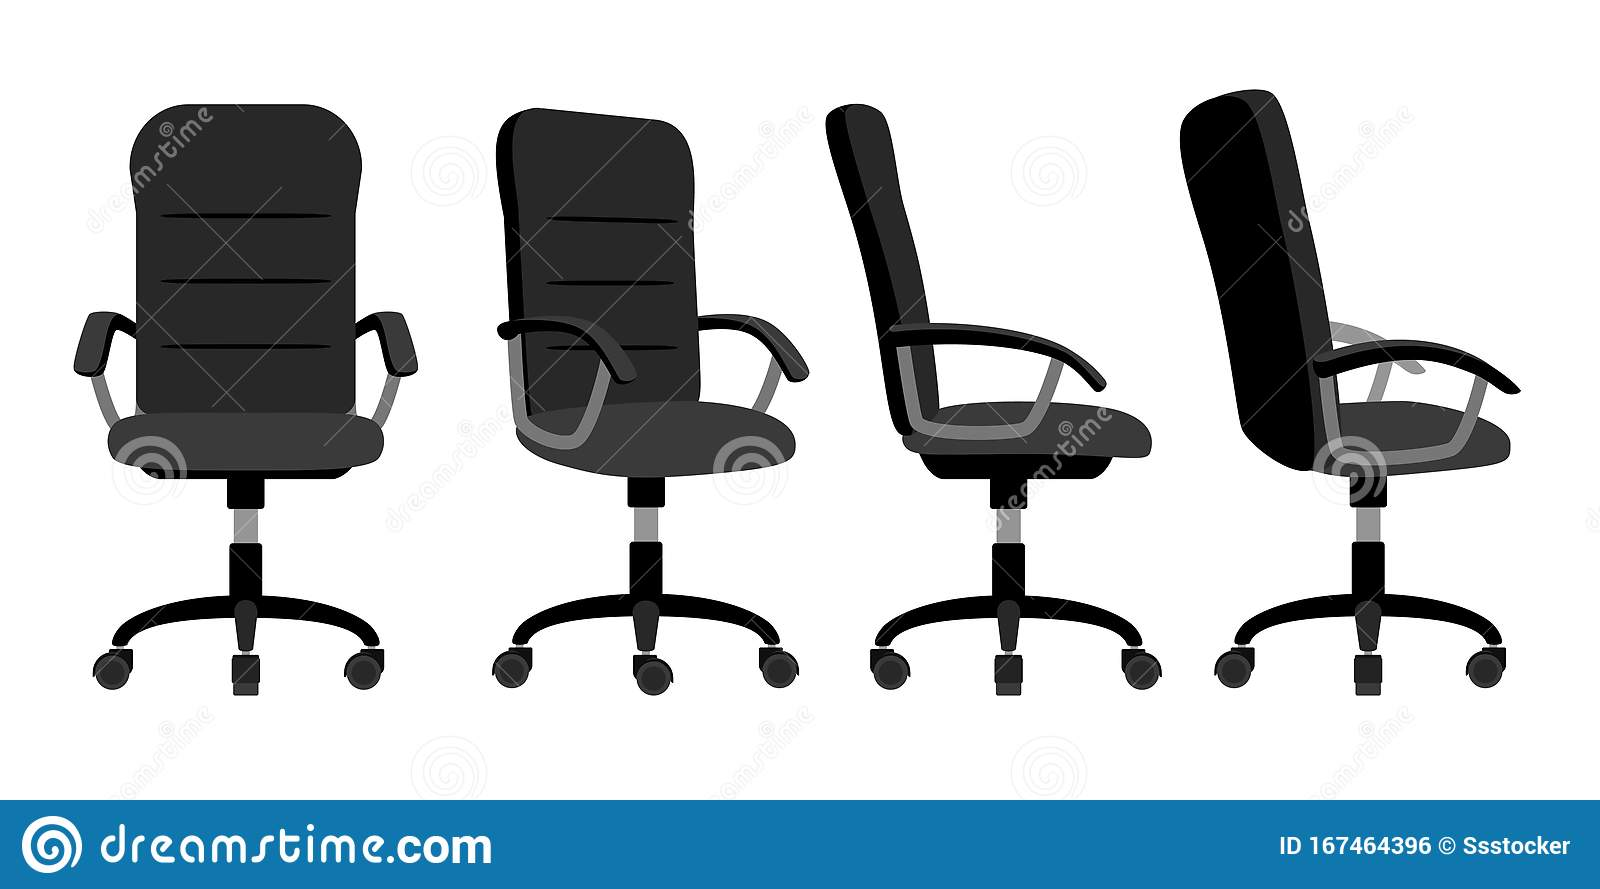 Office Chair Front And Back Stock Vector Illustration Of Ergonomic Flat 167464396